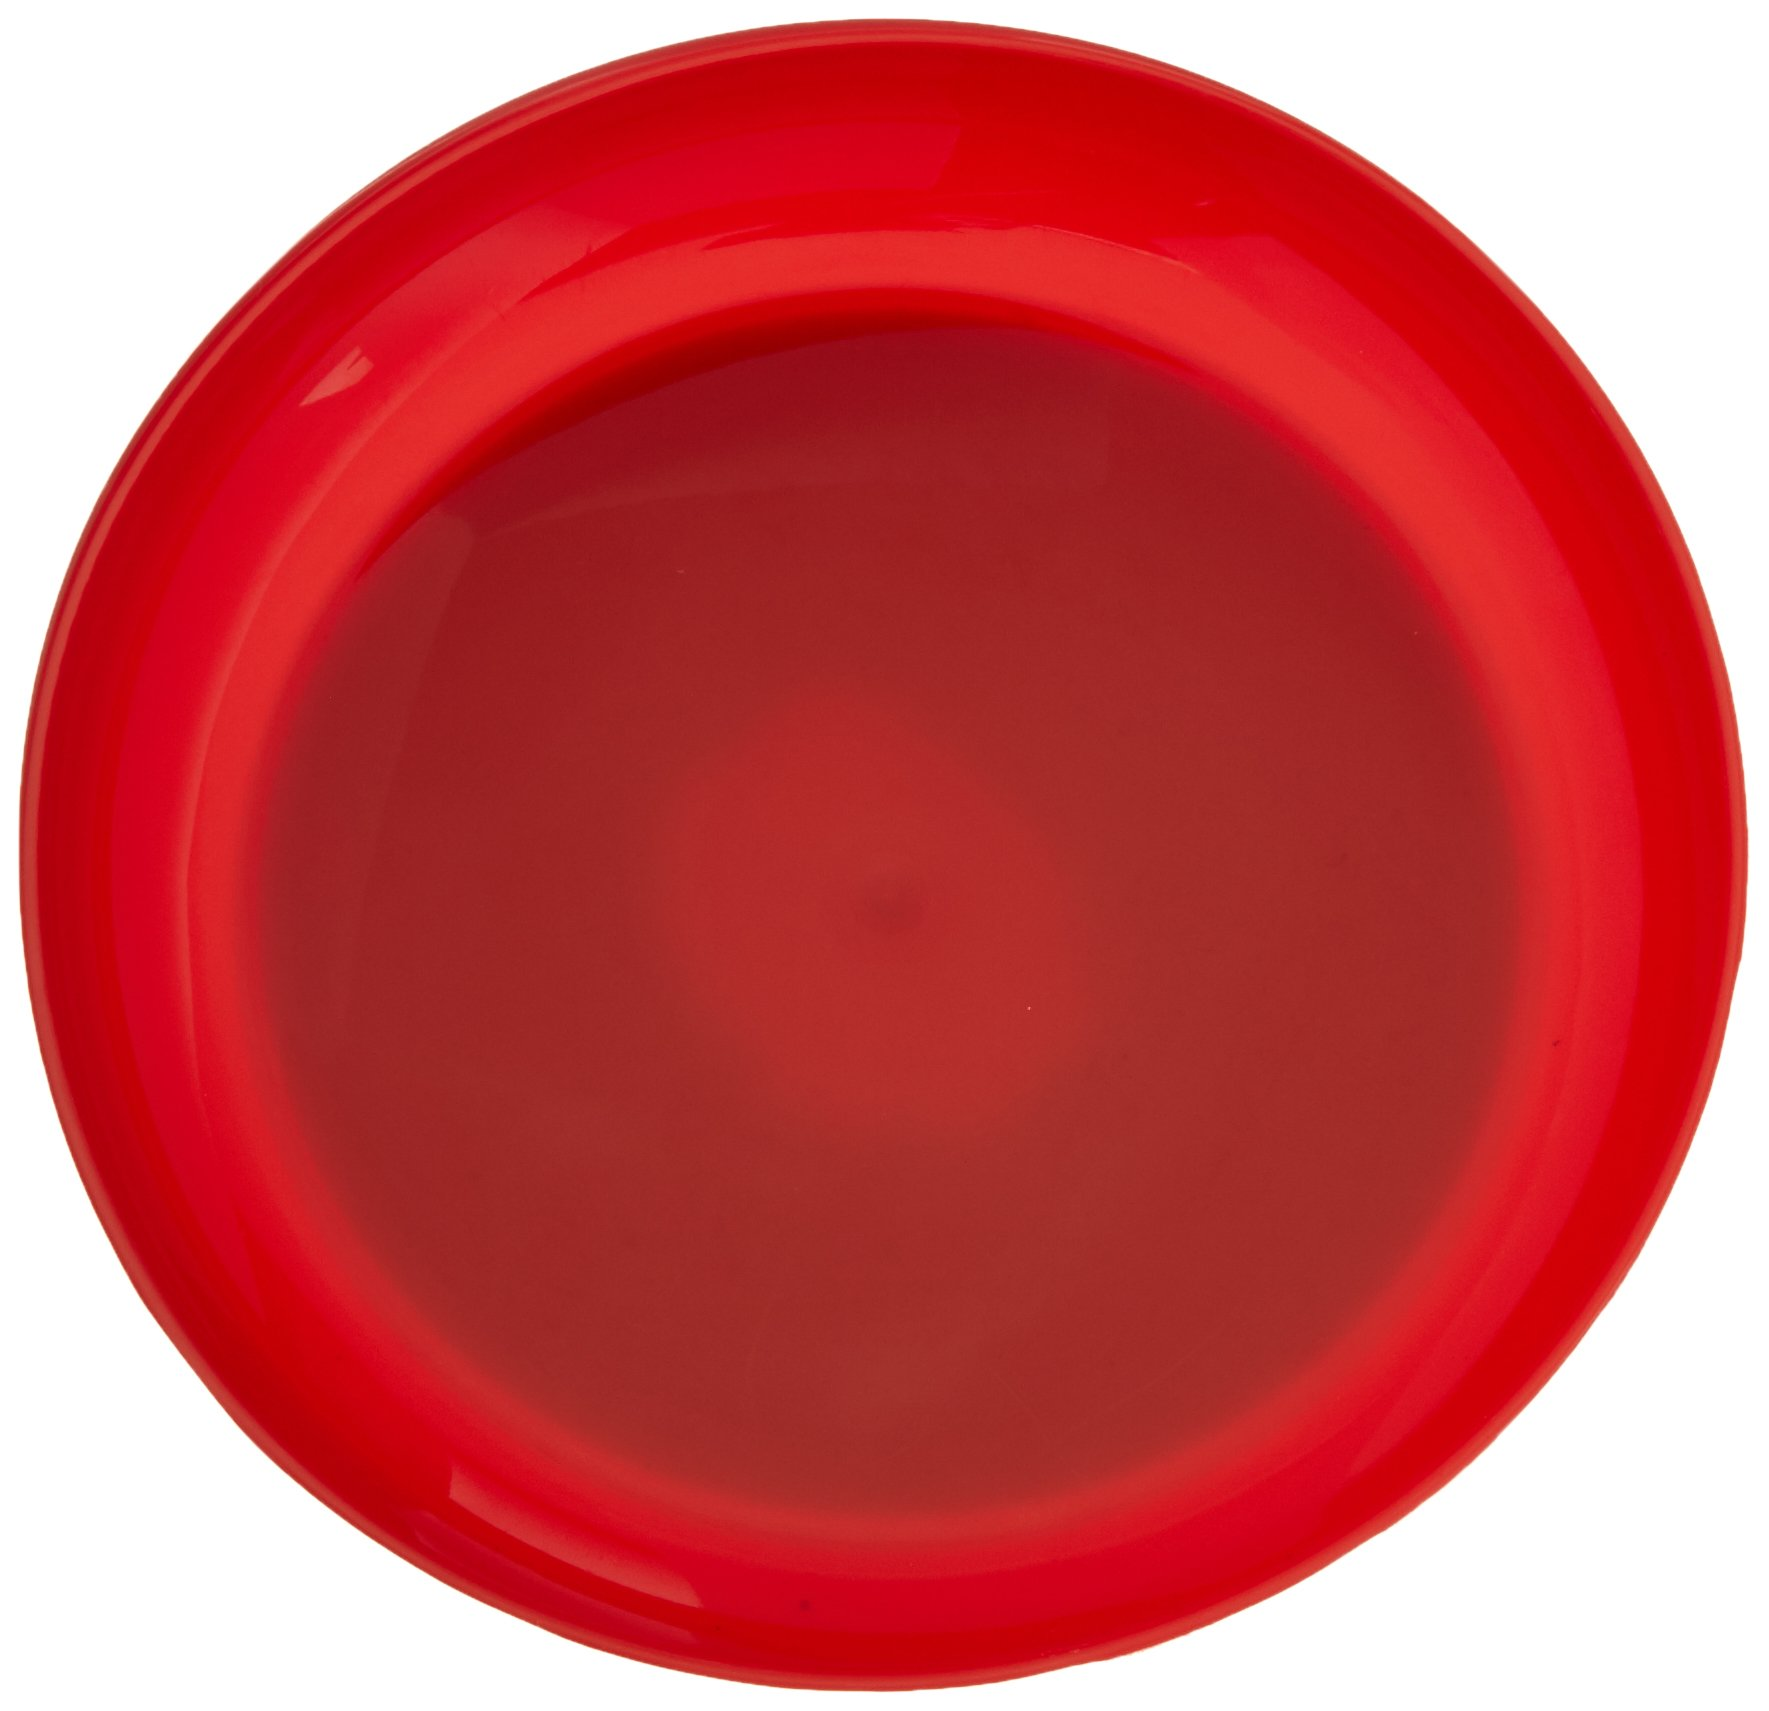 Sammons Preston Red Round Scoop Dish, Unbreakable 8'' Scooper Bowl for Elderly, Disabled, & Handicapped, Plate with Non Skid Rubber Padded Bottom for Independent Eating, Self-Feeding Aid